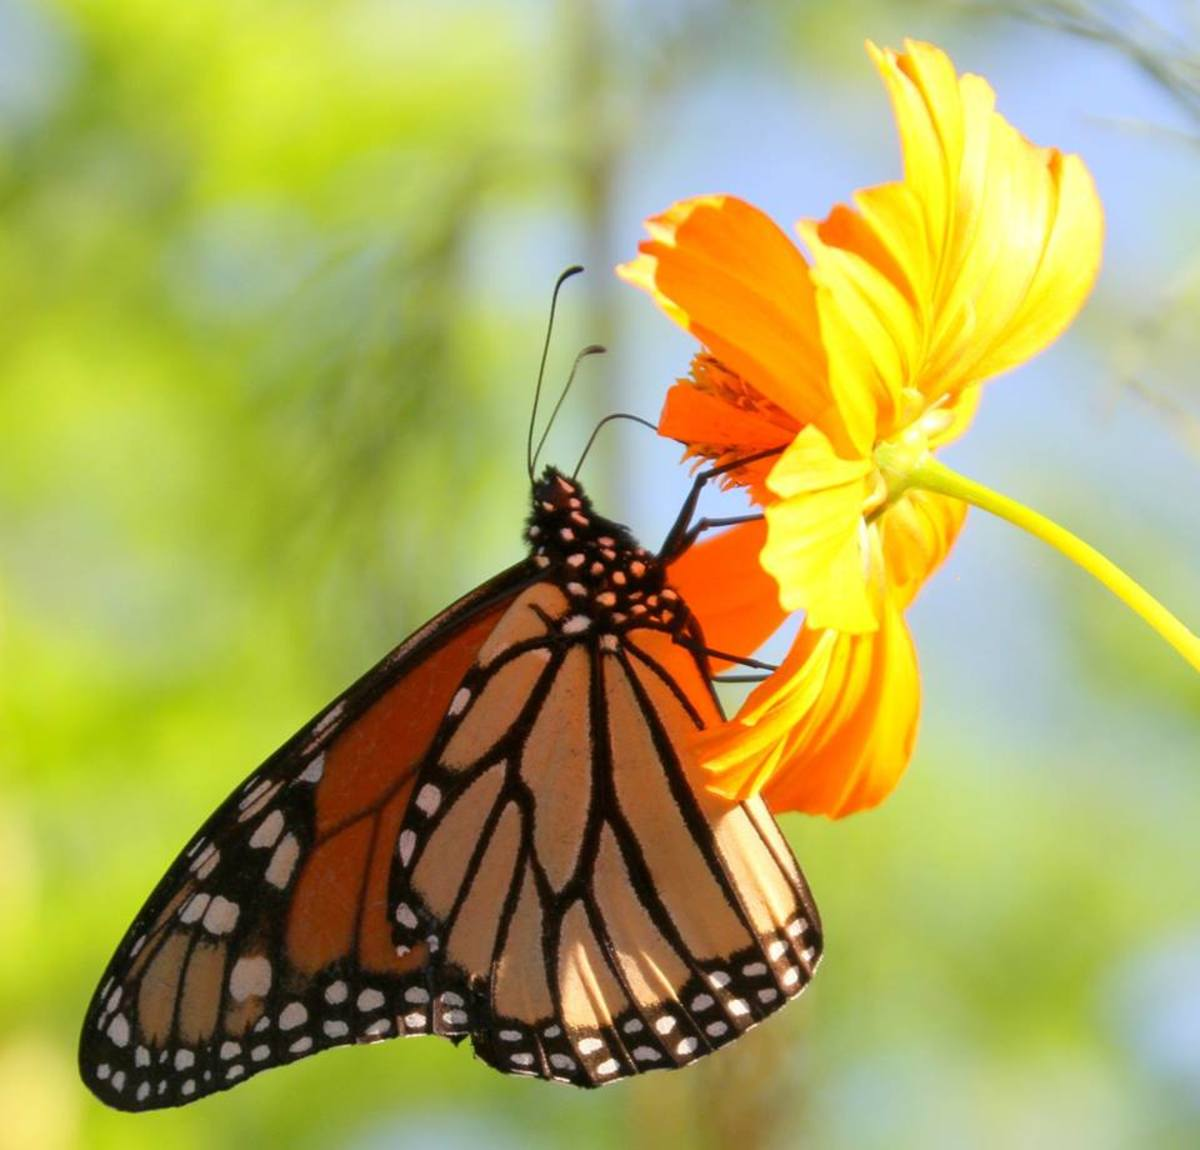 Monarchs compete with other creatures, such as humans, for natural habitat.